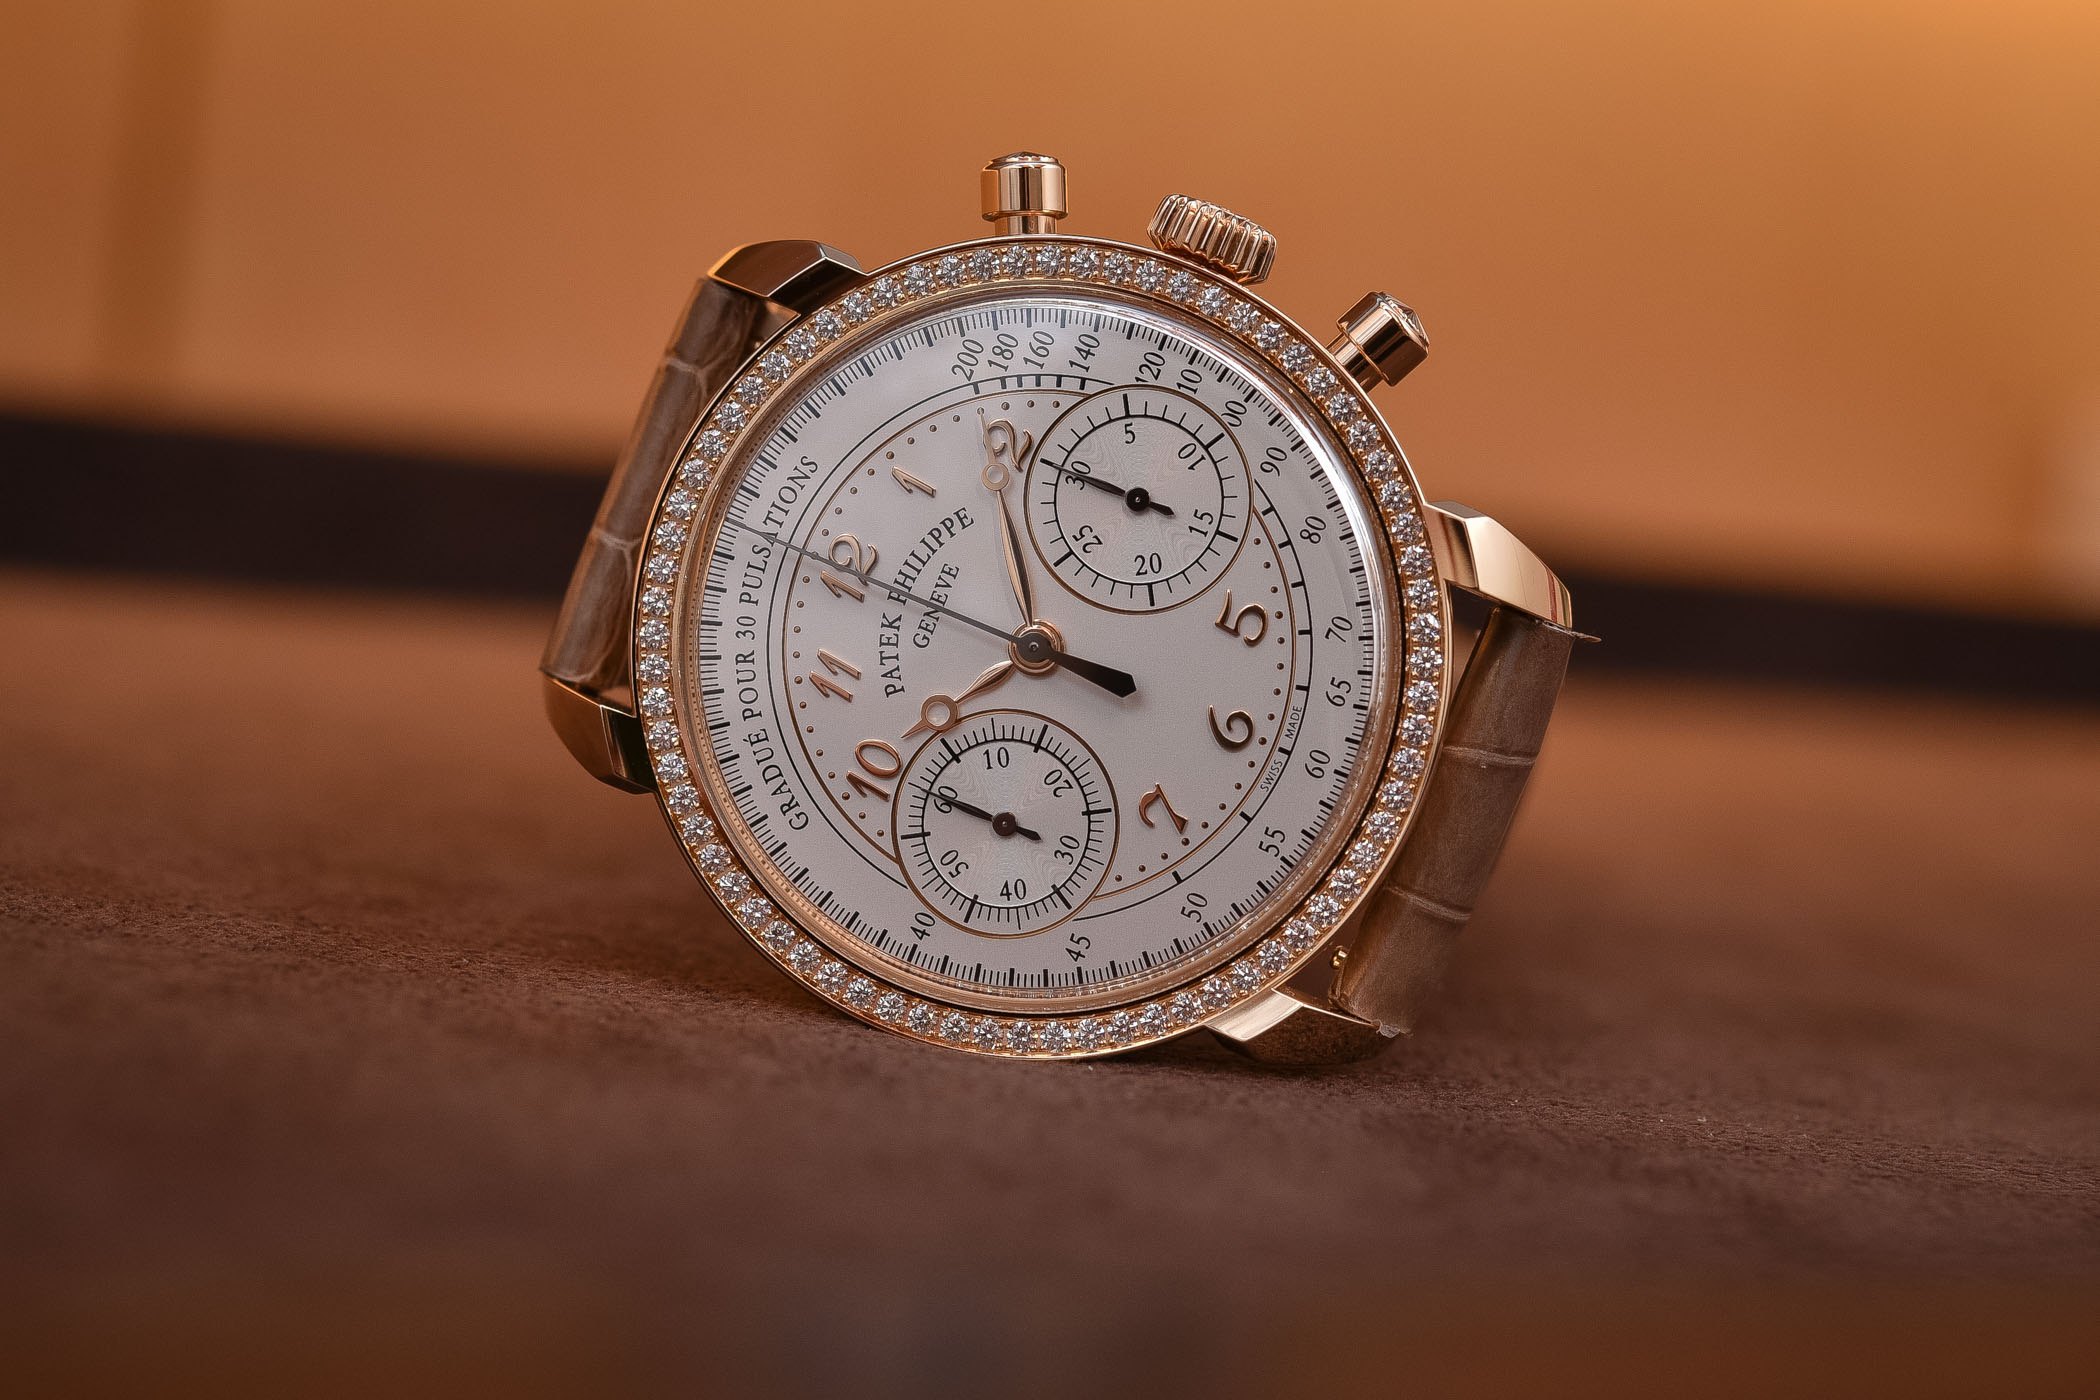 Patek Philippe 7150R:250R Chronograph ladies - Baselworld 2018